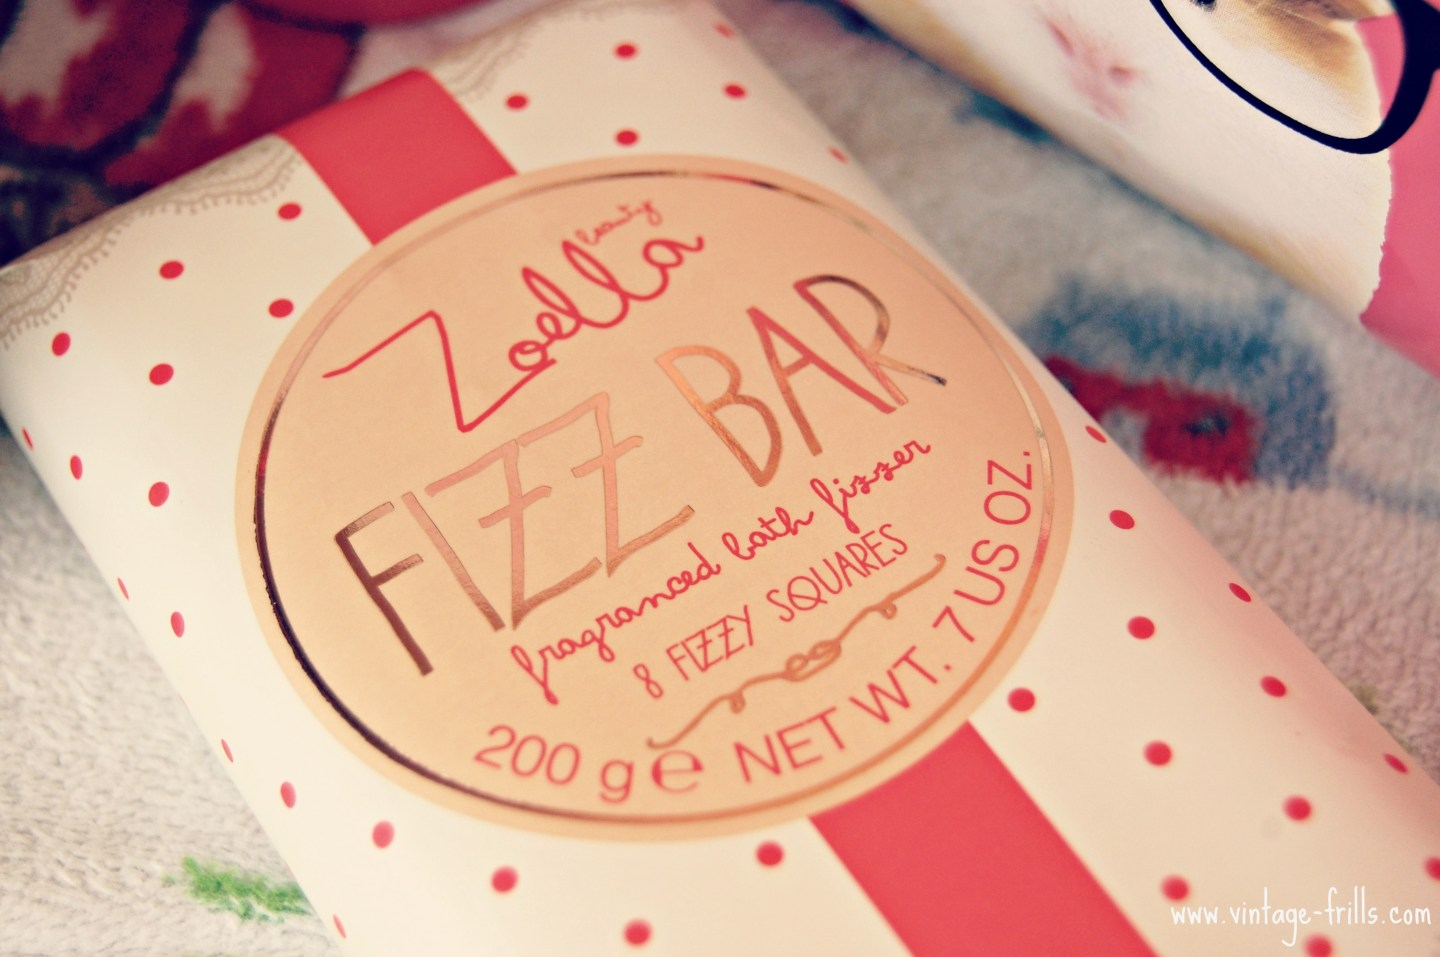 Zoella, Zoella Beauty, Fizz Bar, Bath Fizzer